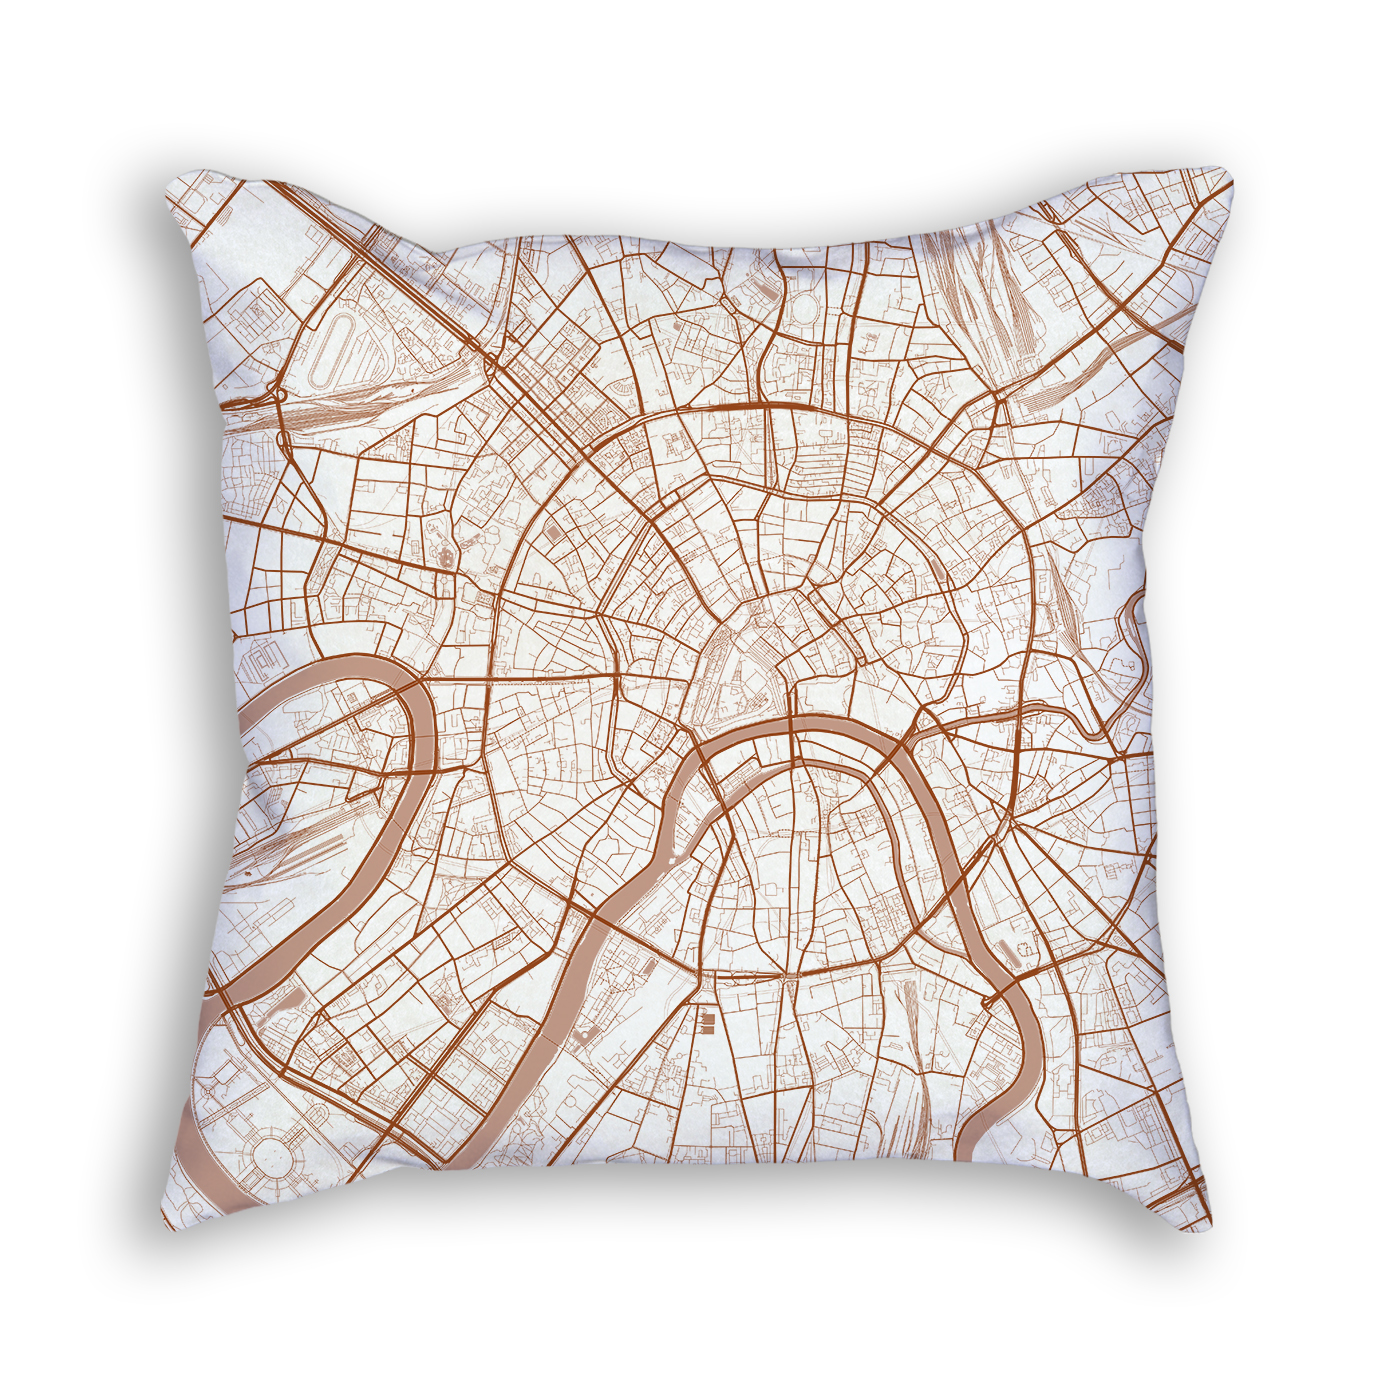 Moscow Russia City Map Art Decorative Throw Pillow